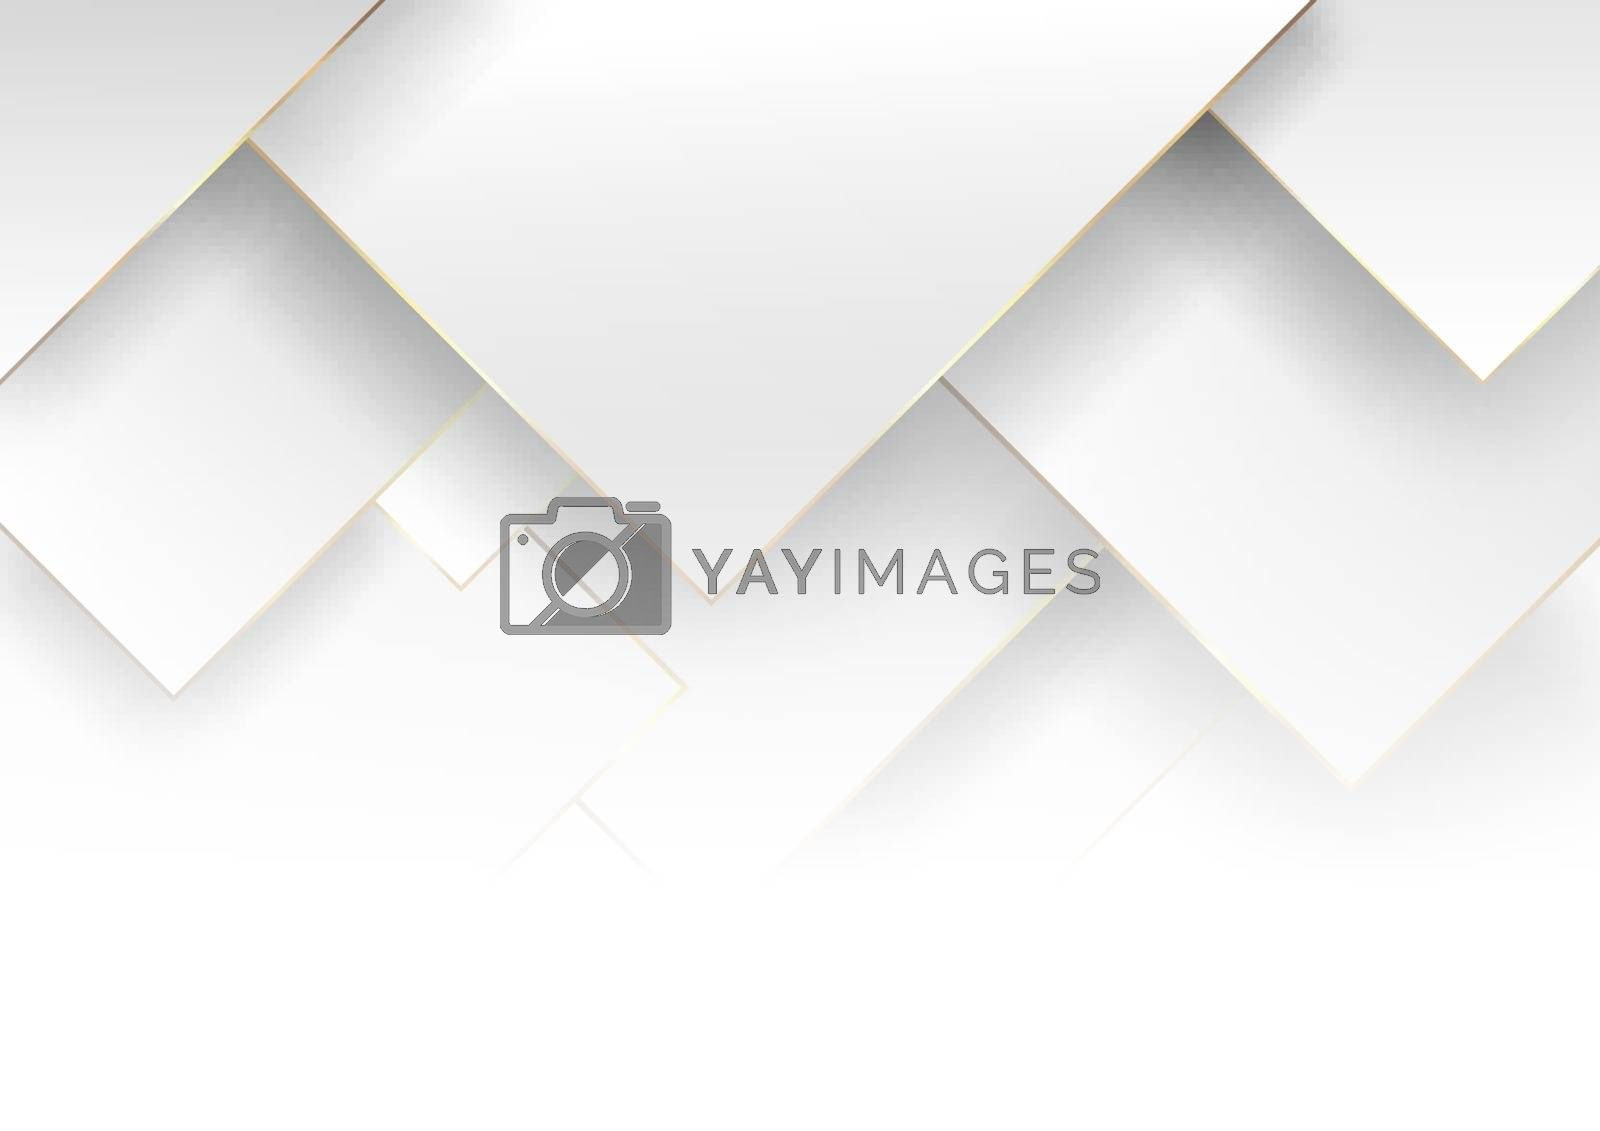 Abstract modern elegant white and gray gradient square shape with golden line. Geometric overlapping layer luxury style. Vector illustration